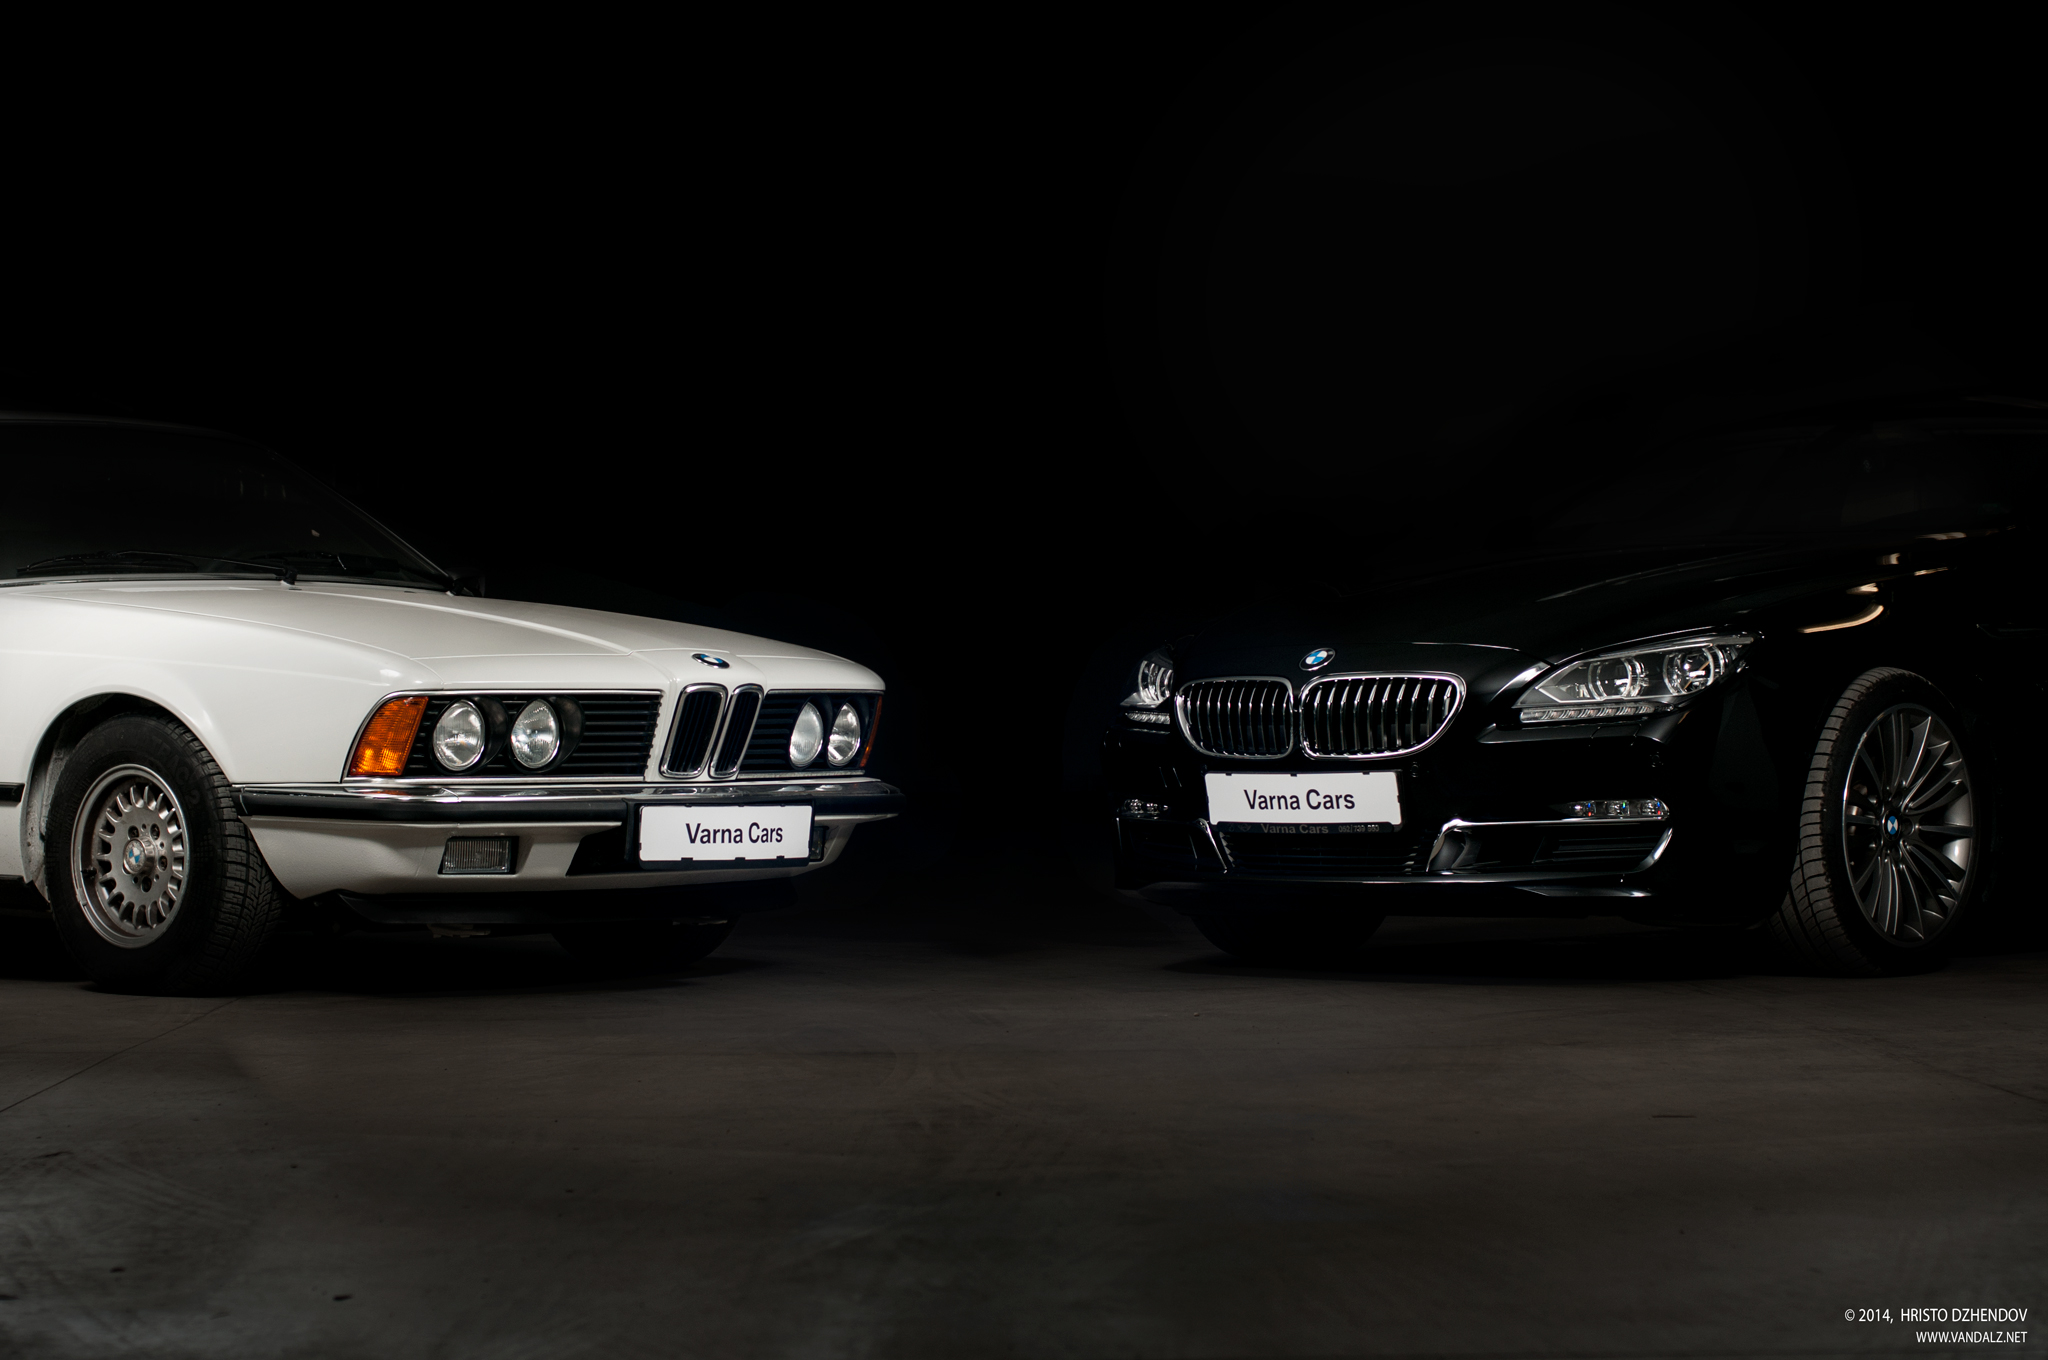 187 Evolution Bmw 6 Series 628csi E24 Vs 640d Gran Coupe